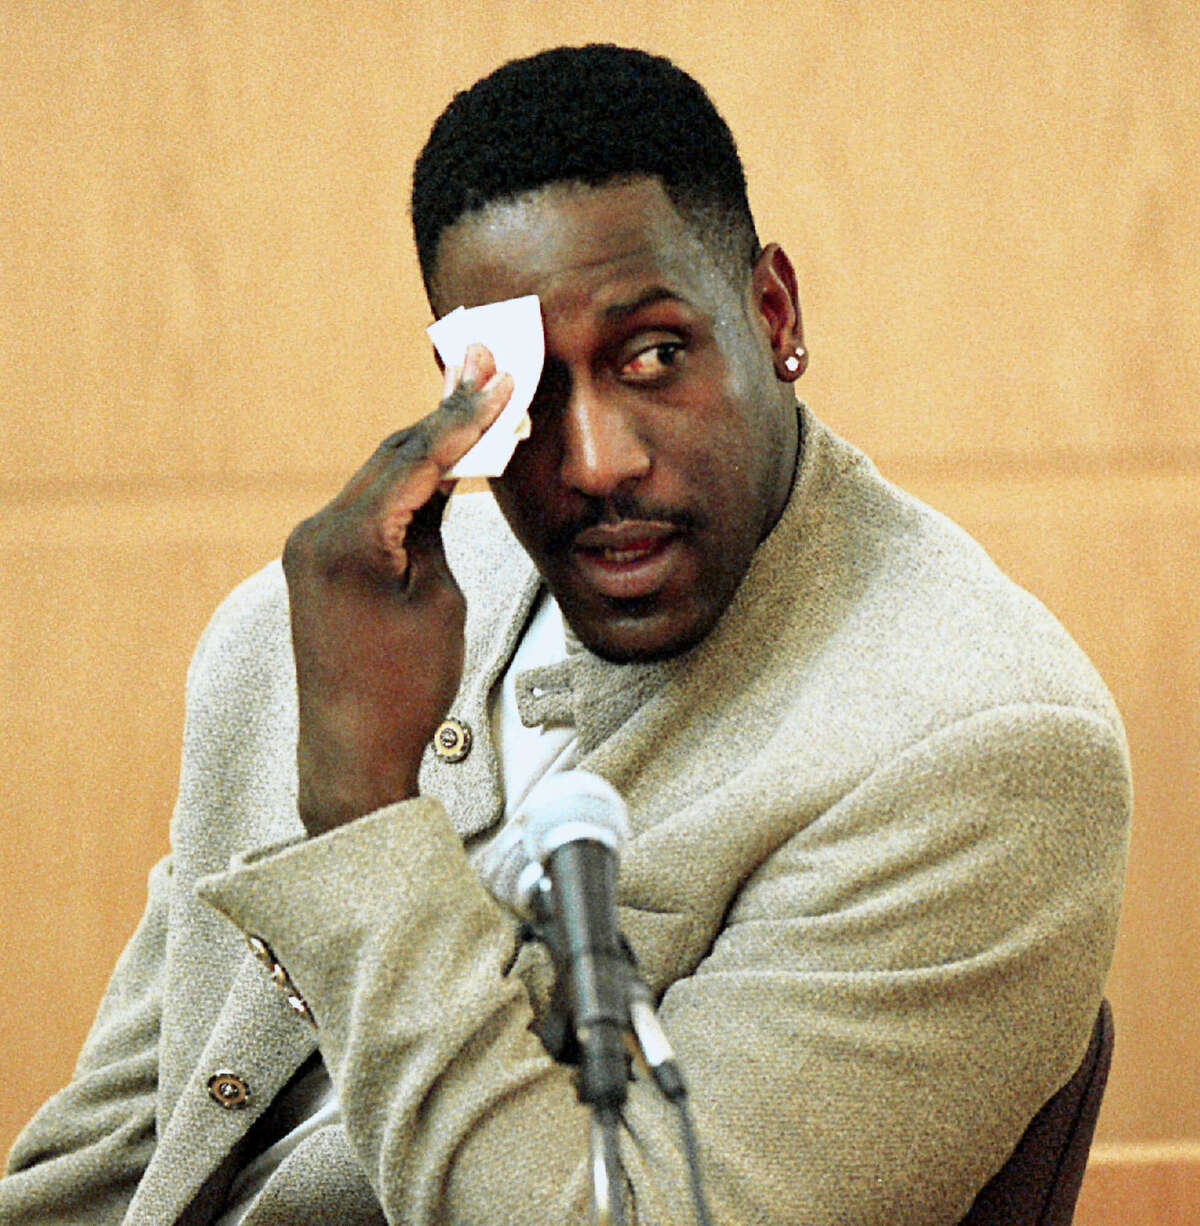 In this Dec. 4, 2000 photo, former North Carolina State basketball star Charles Shackleford wipes his forehead as he answers questions during Rae Carruth's murder trial in Charlotte, N.C. Police in North Carolina say Shackleford has been found dead in his home in Kinston. He was 50.